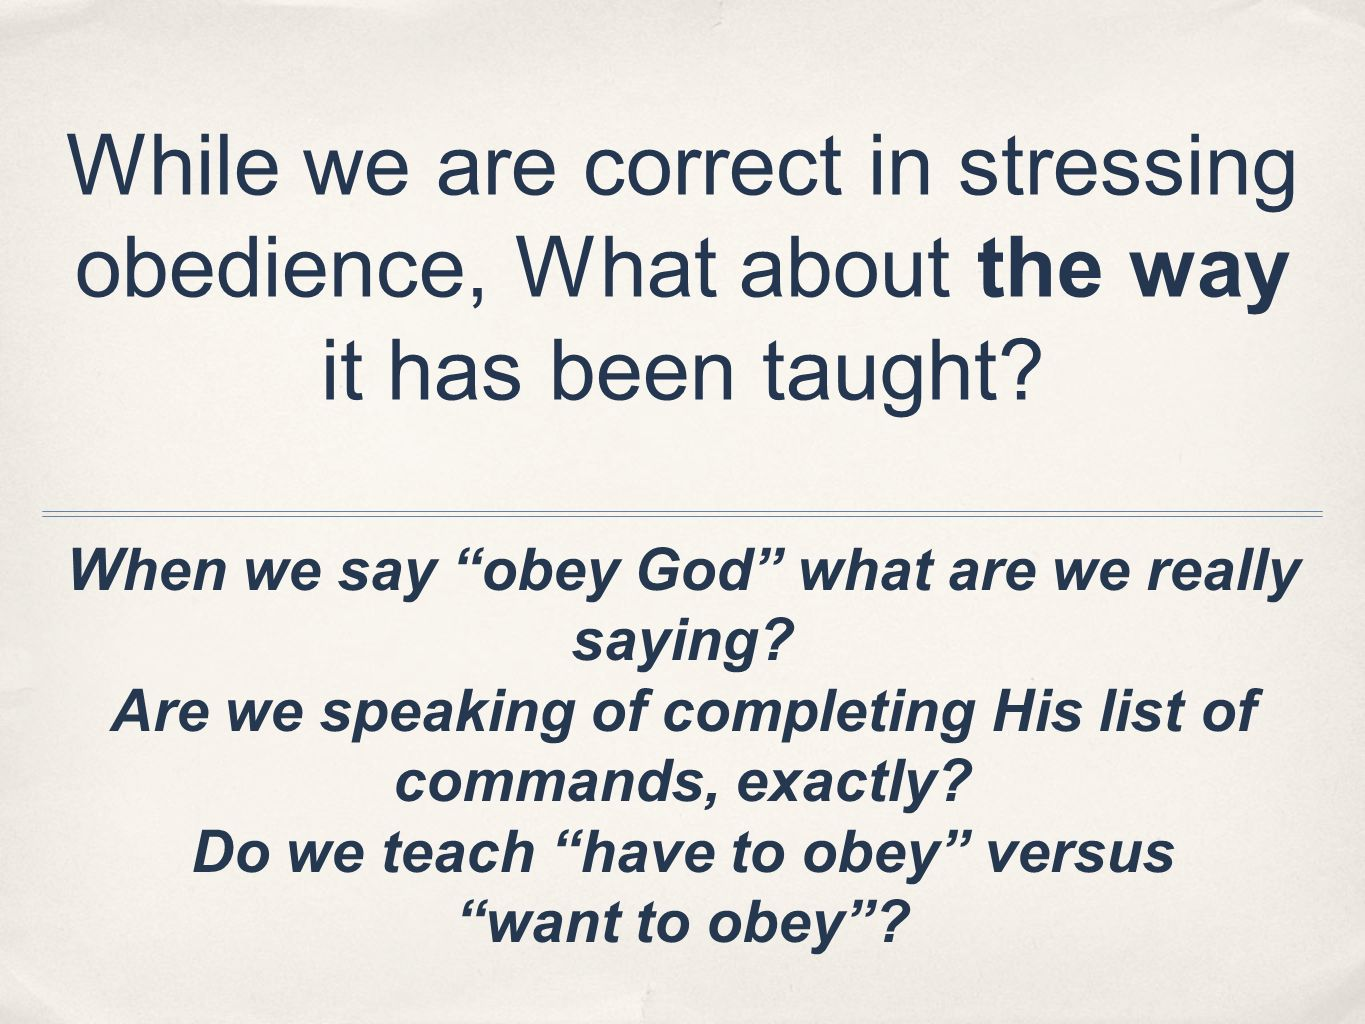 While we are correct in stressing obedience, What about the way it has been taught